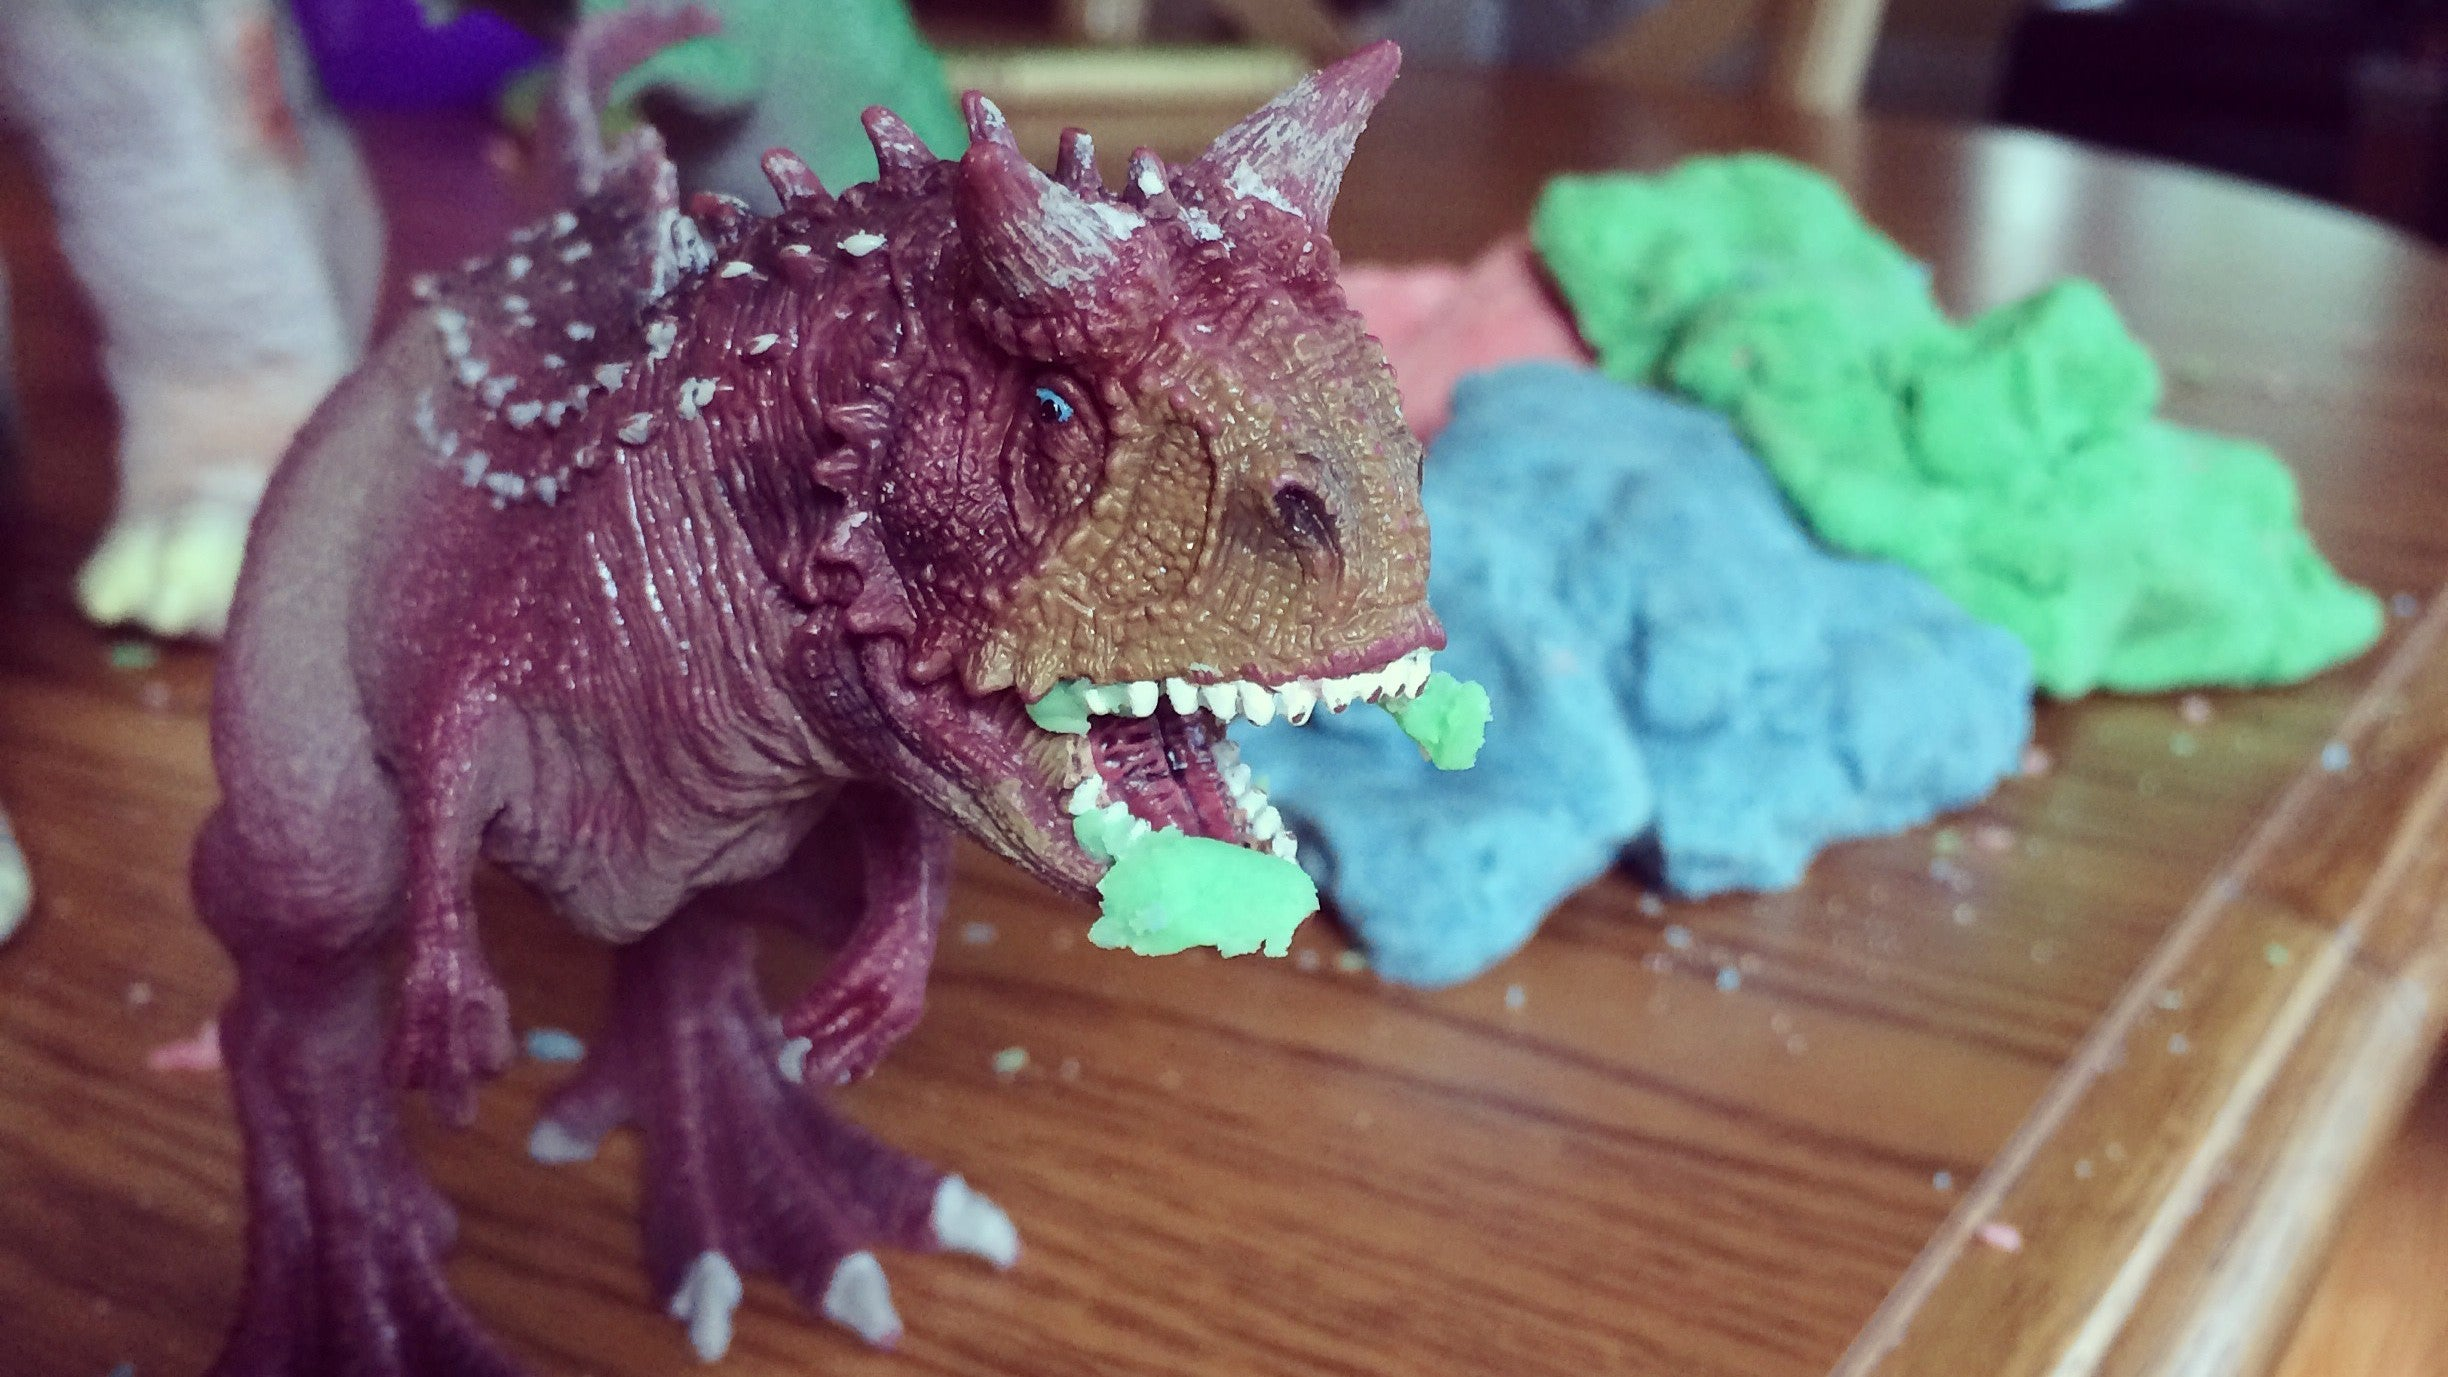 This Is The Best Homemade Play Dough